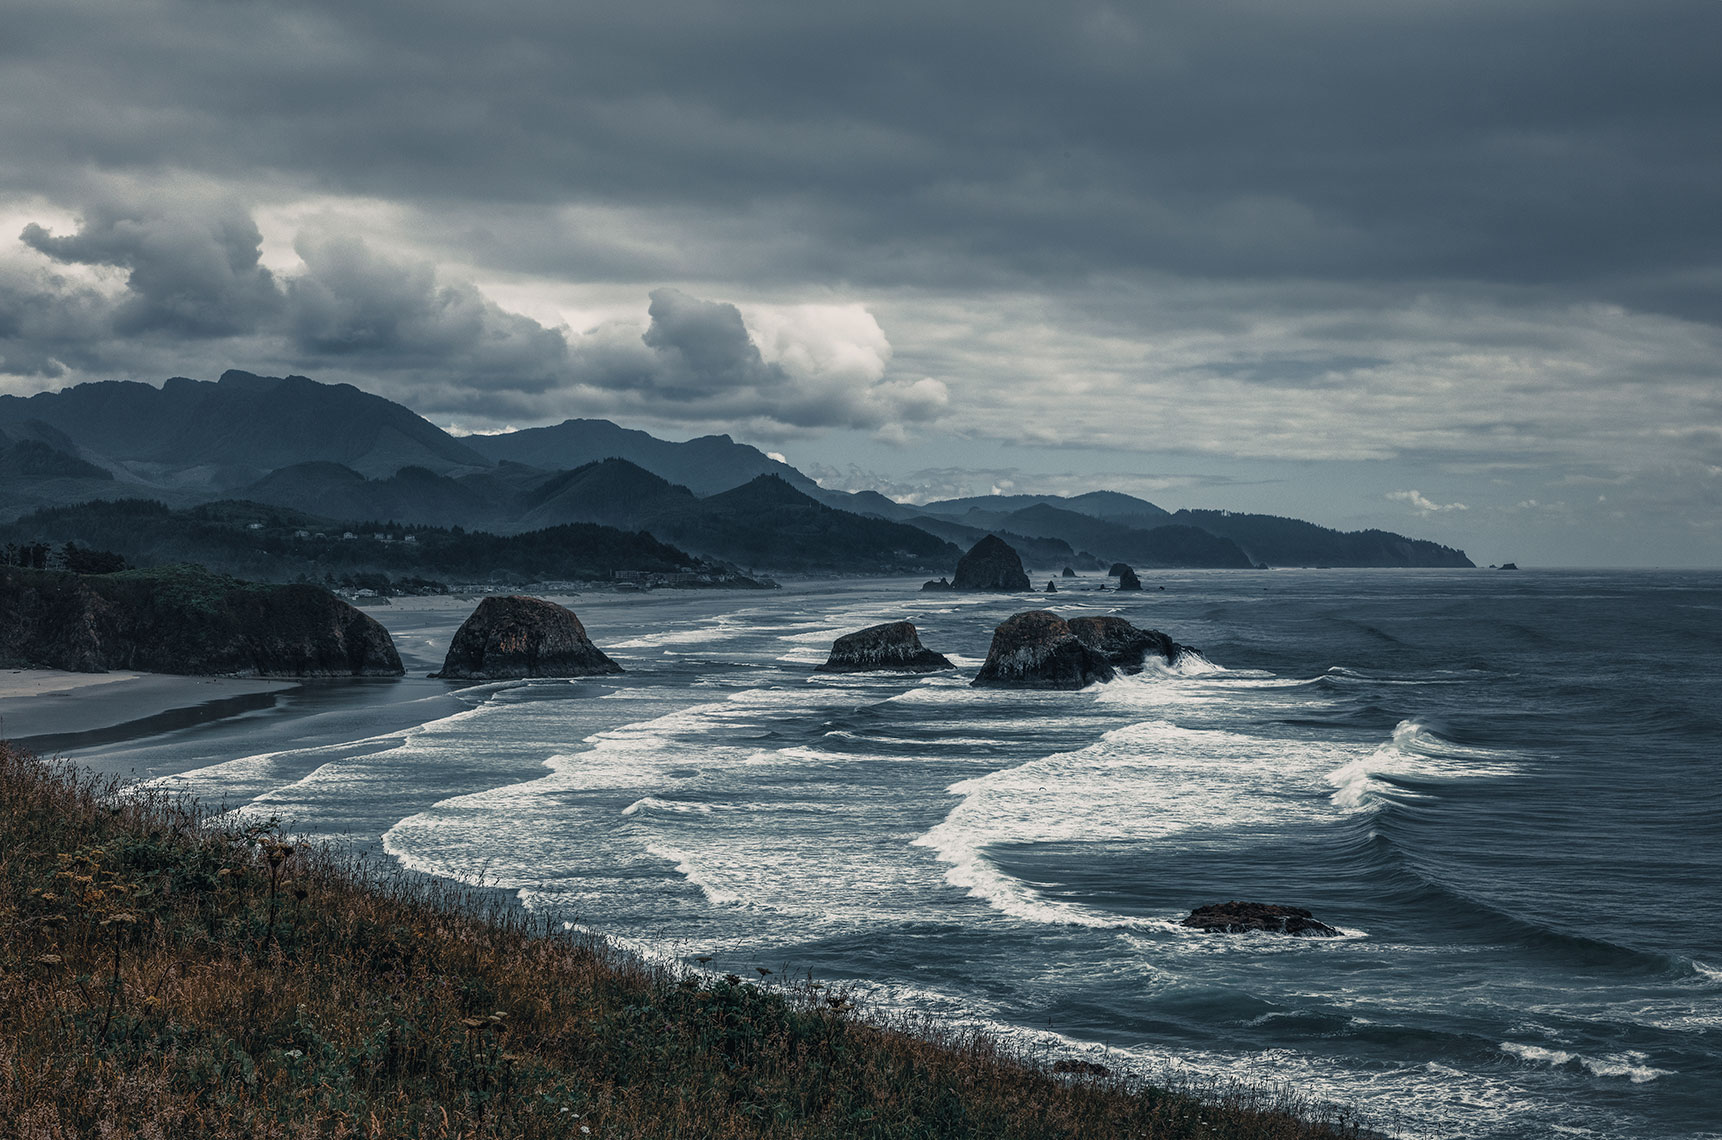 Cannon-beach_Vista